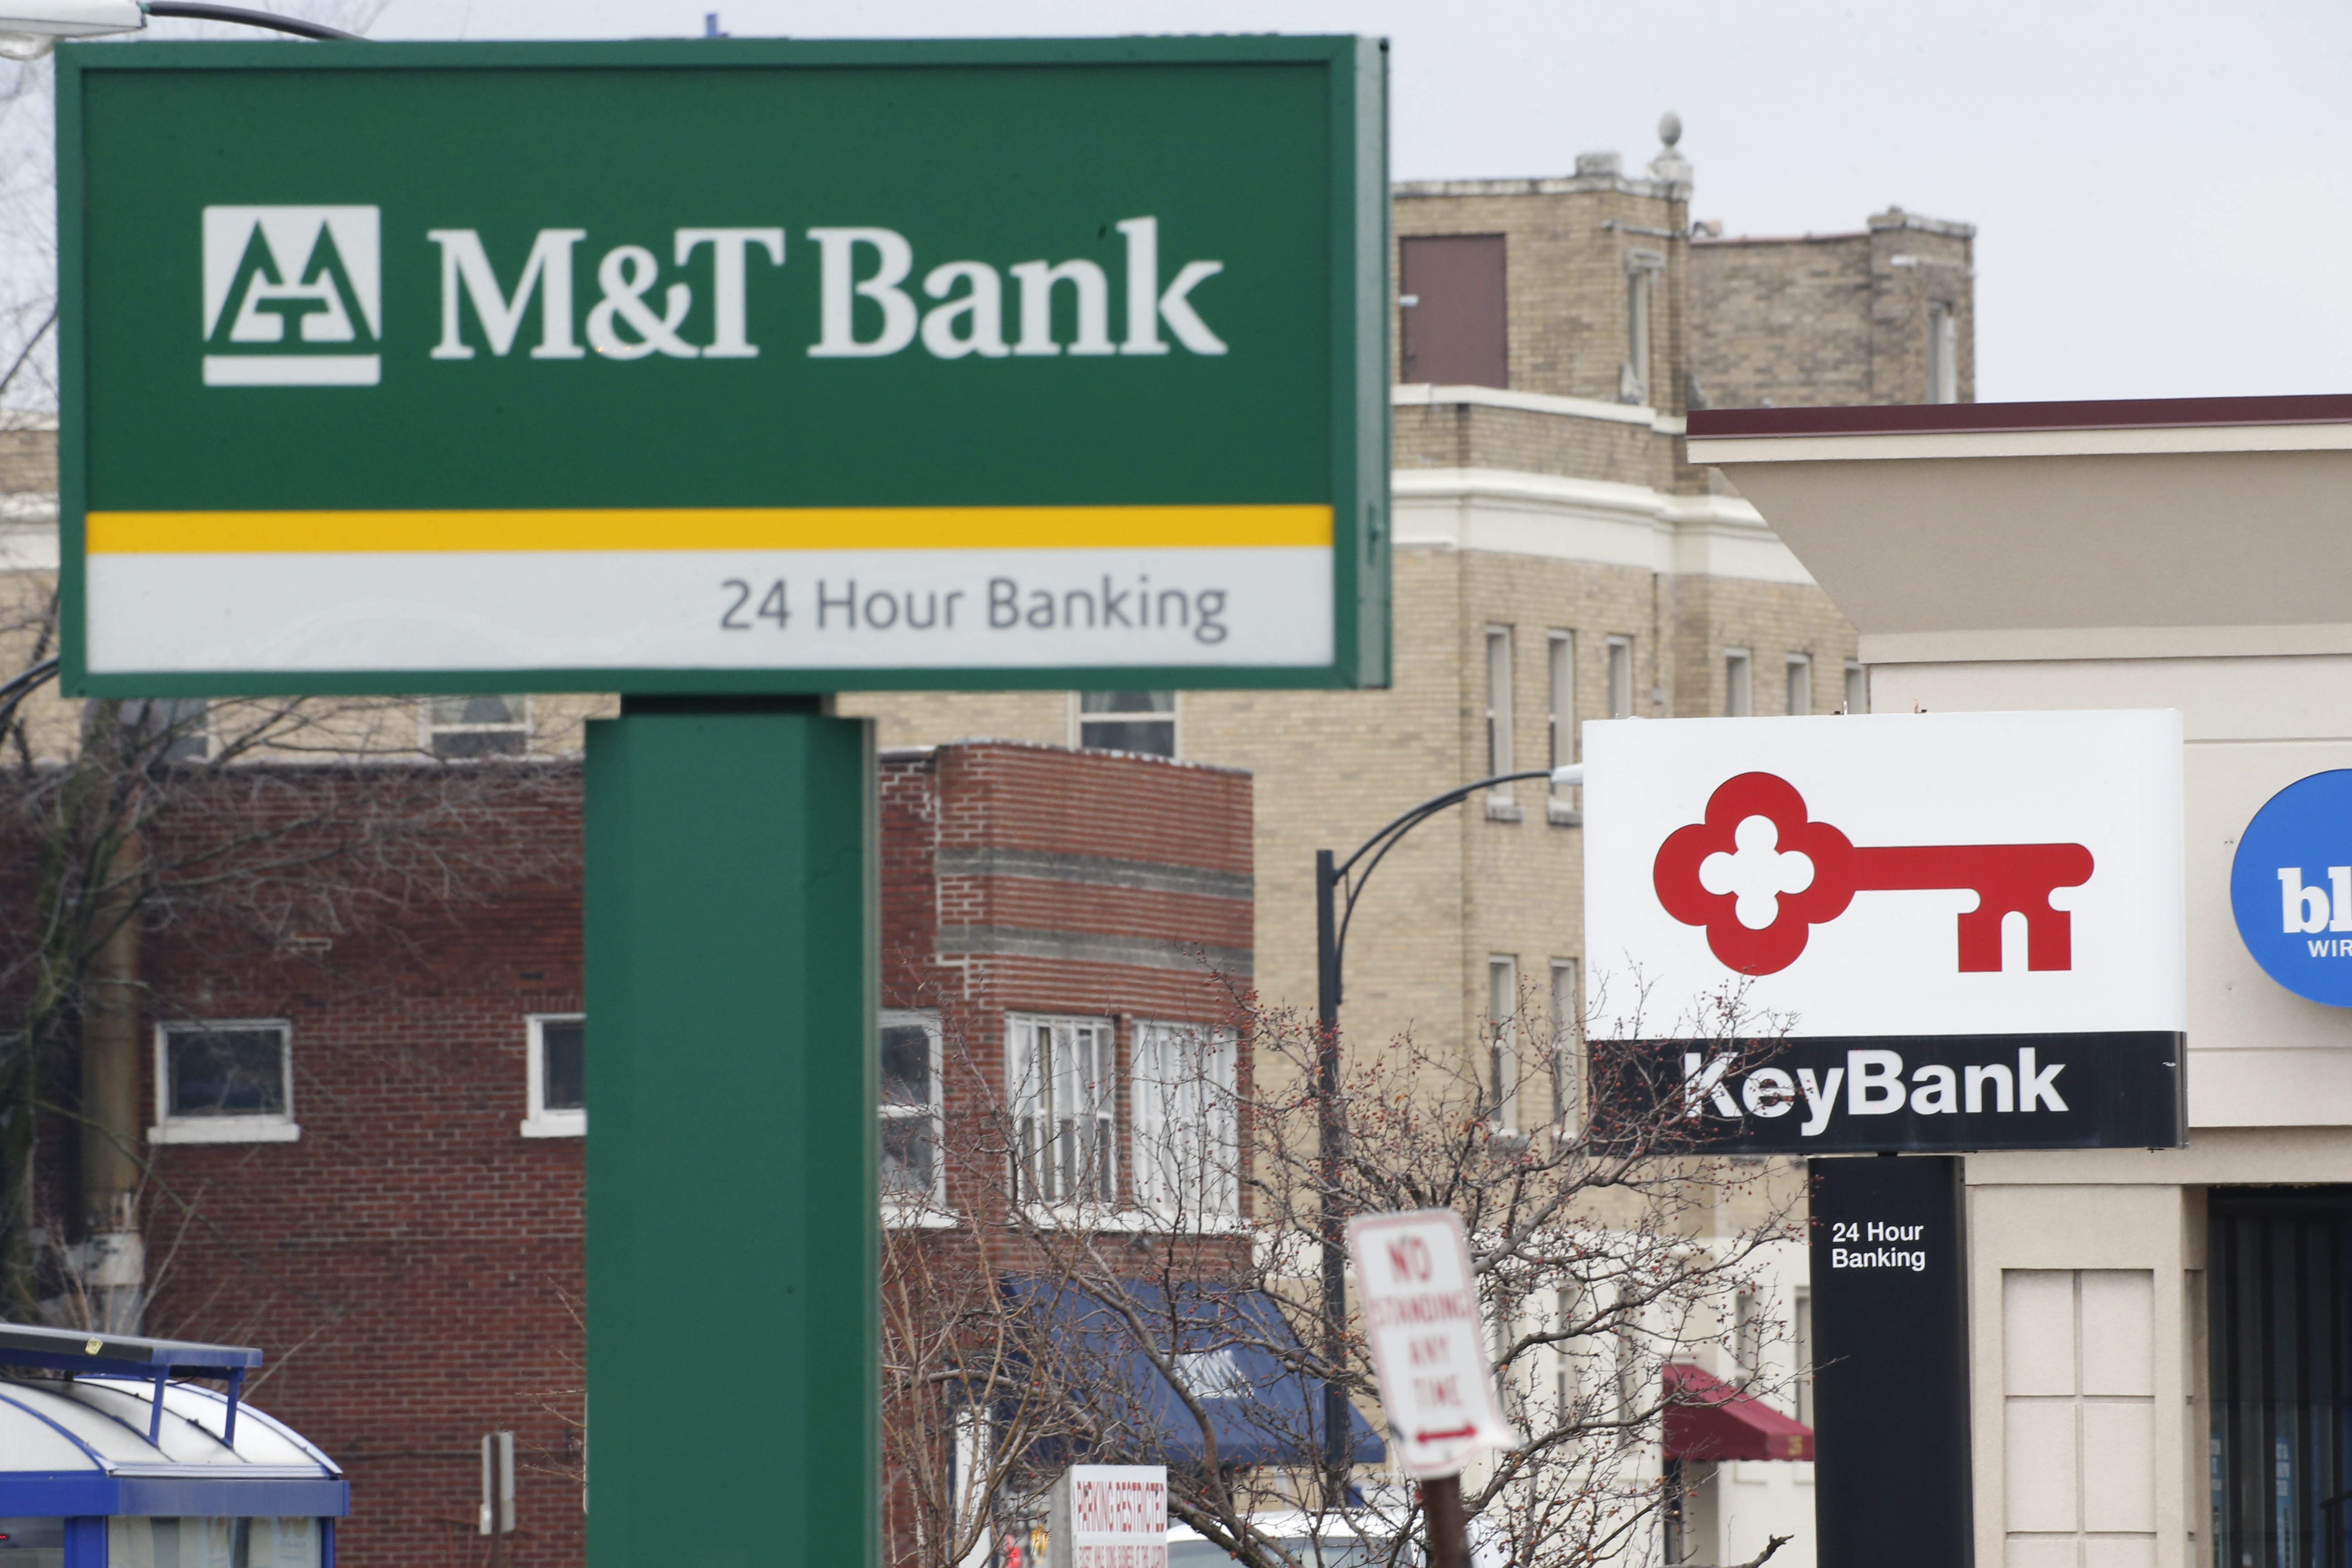 Banks battle for customers in disrupted Western New York market